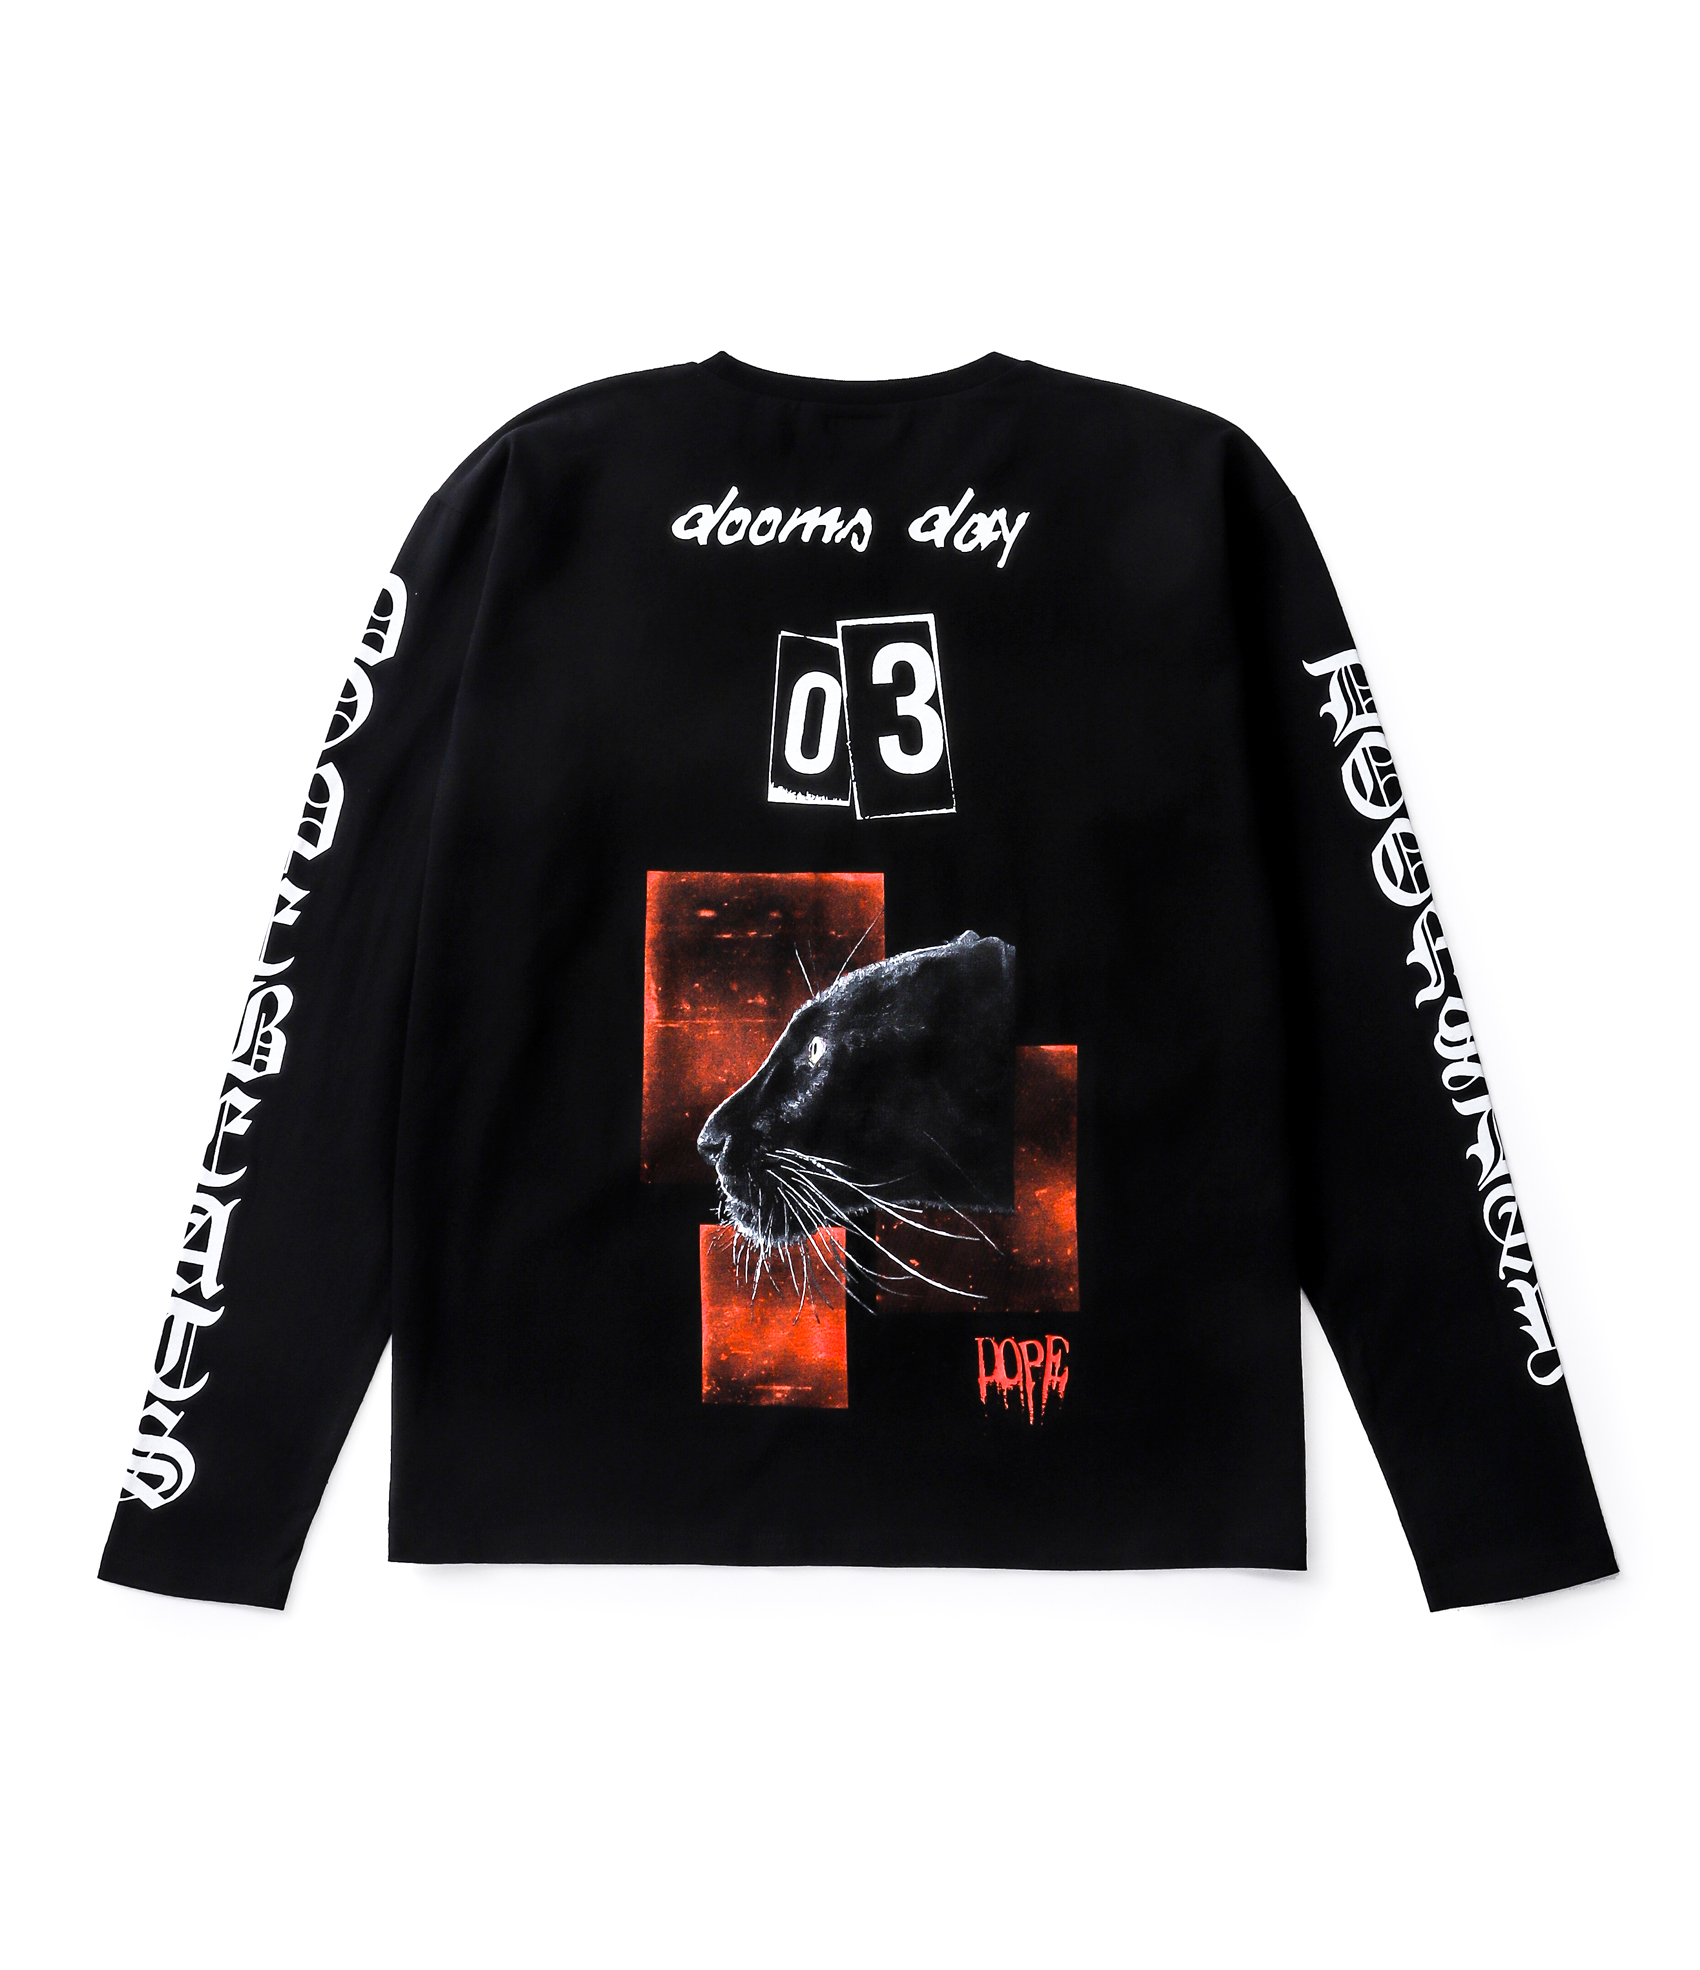 URUHA produce LONG SLEEVE TEE